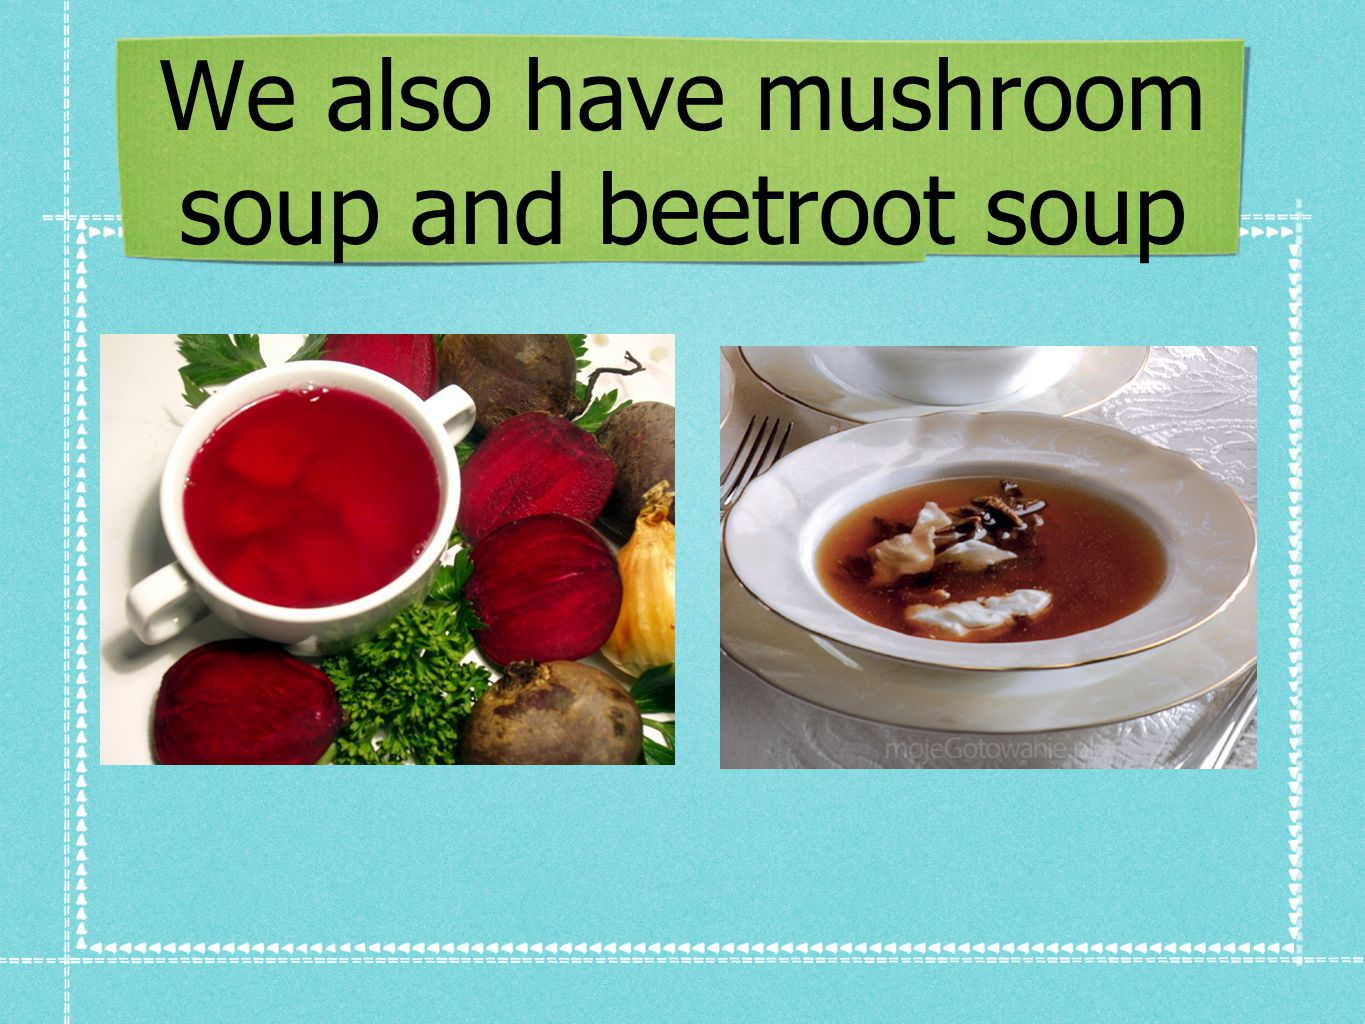 We also have mushroom soup and beetroot soup